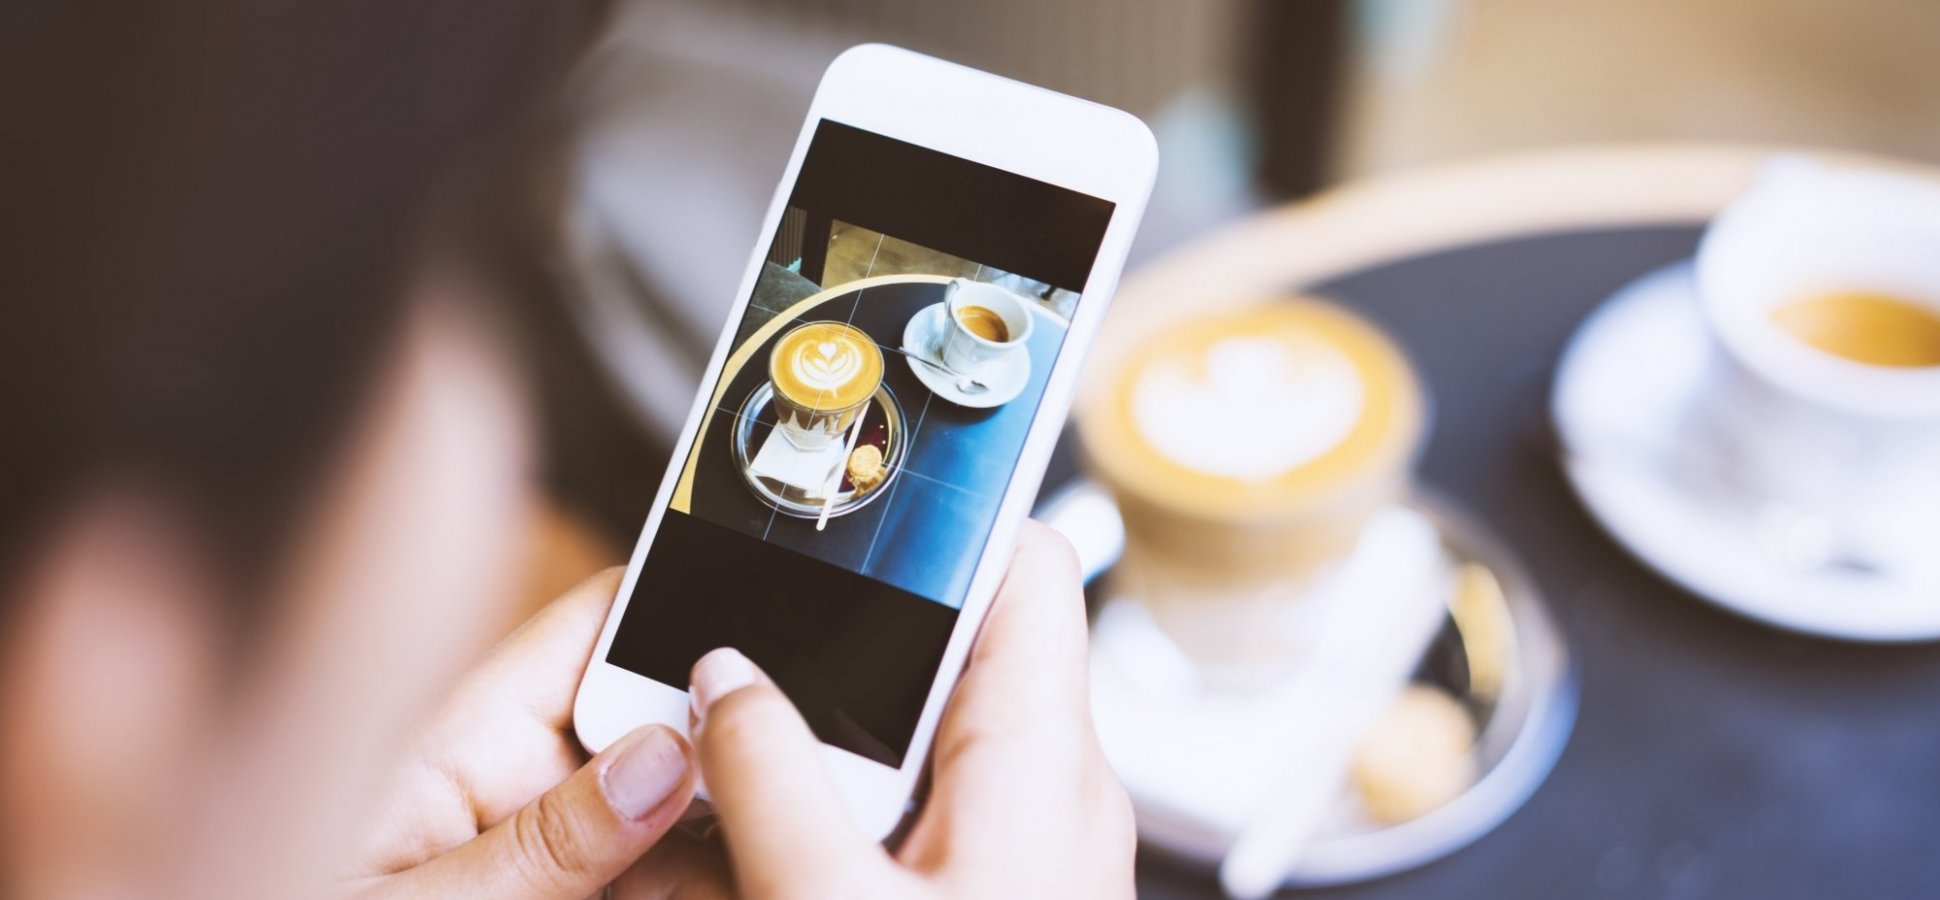 13 Expert Instagram Hacks to Increase Engagement